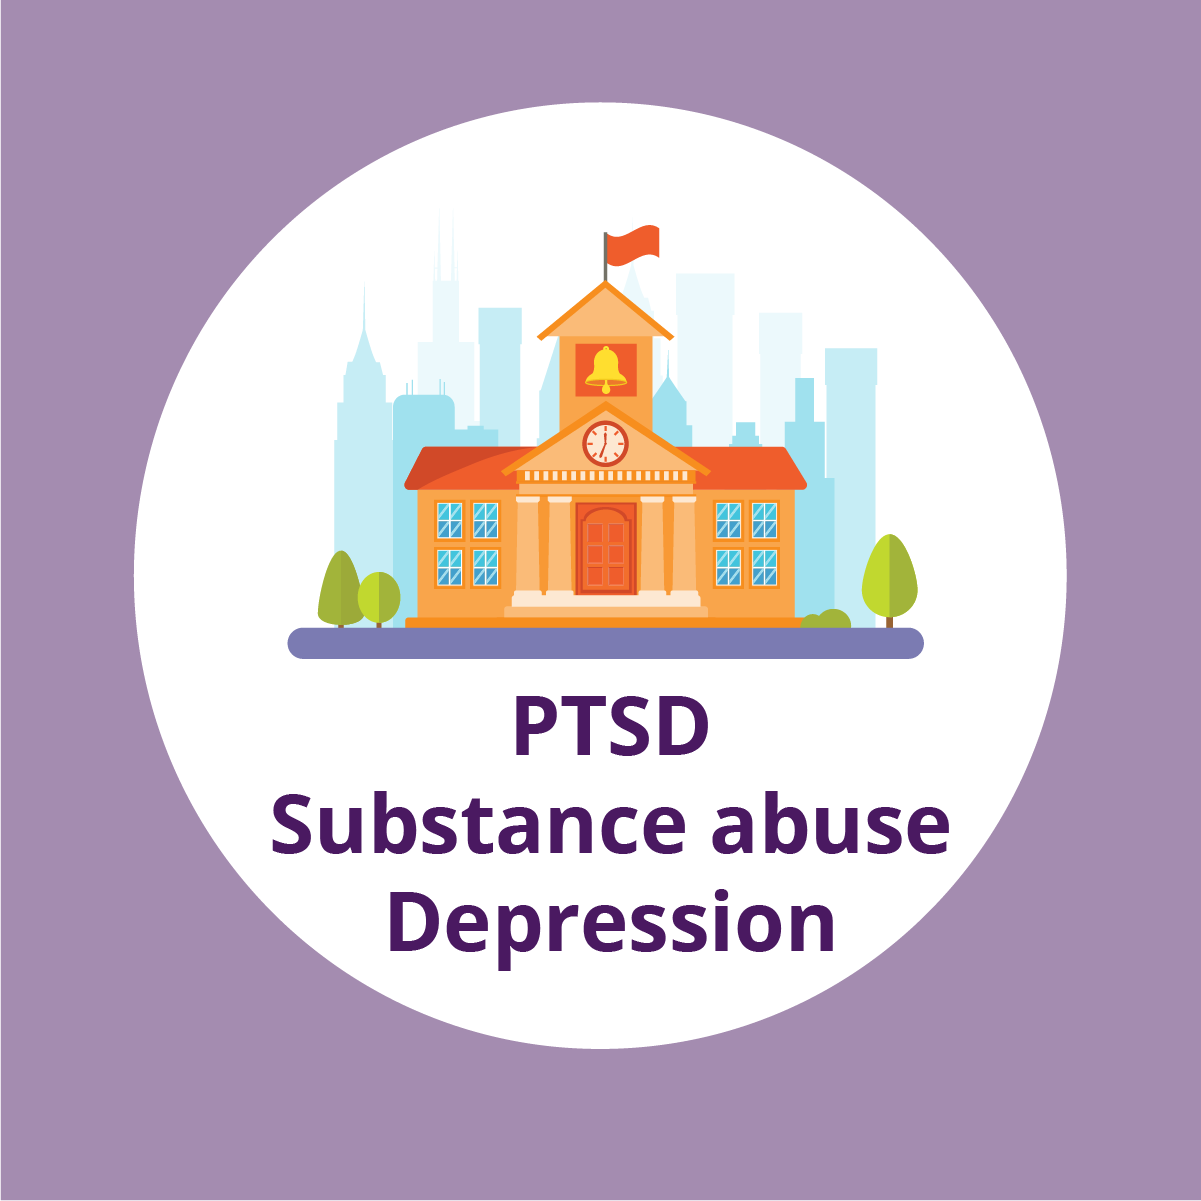 PTSD, substance abuse and depression